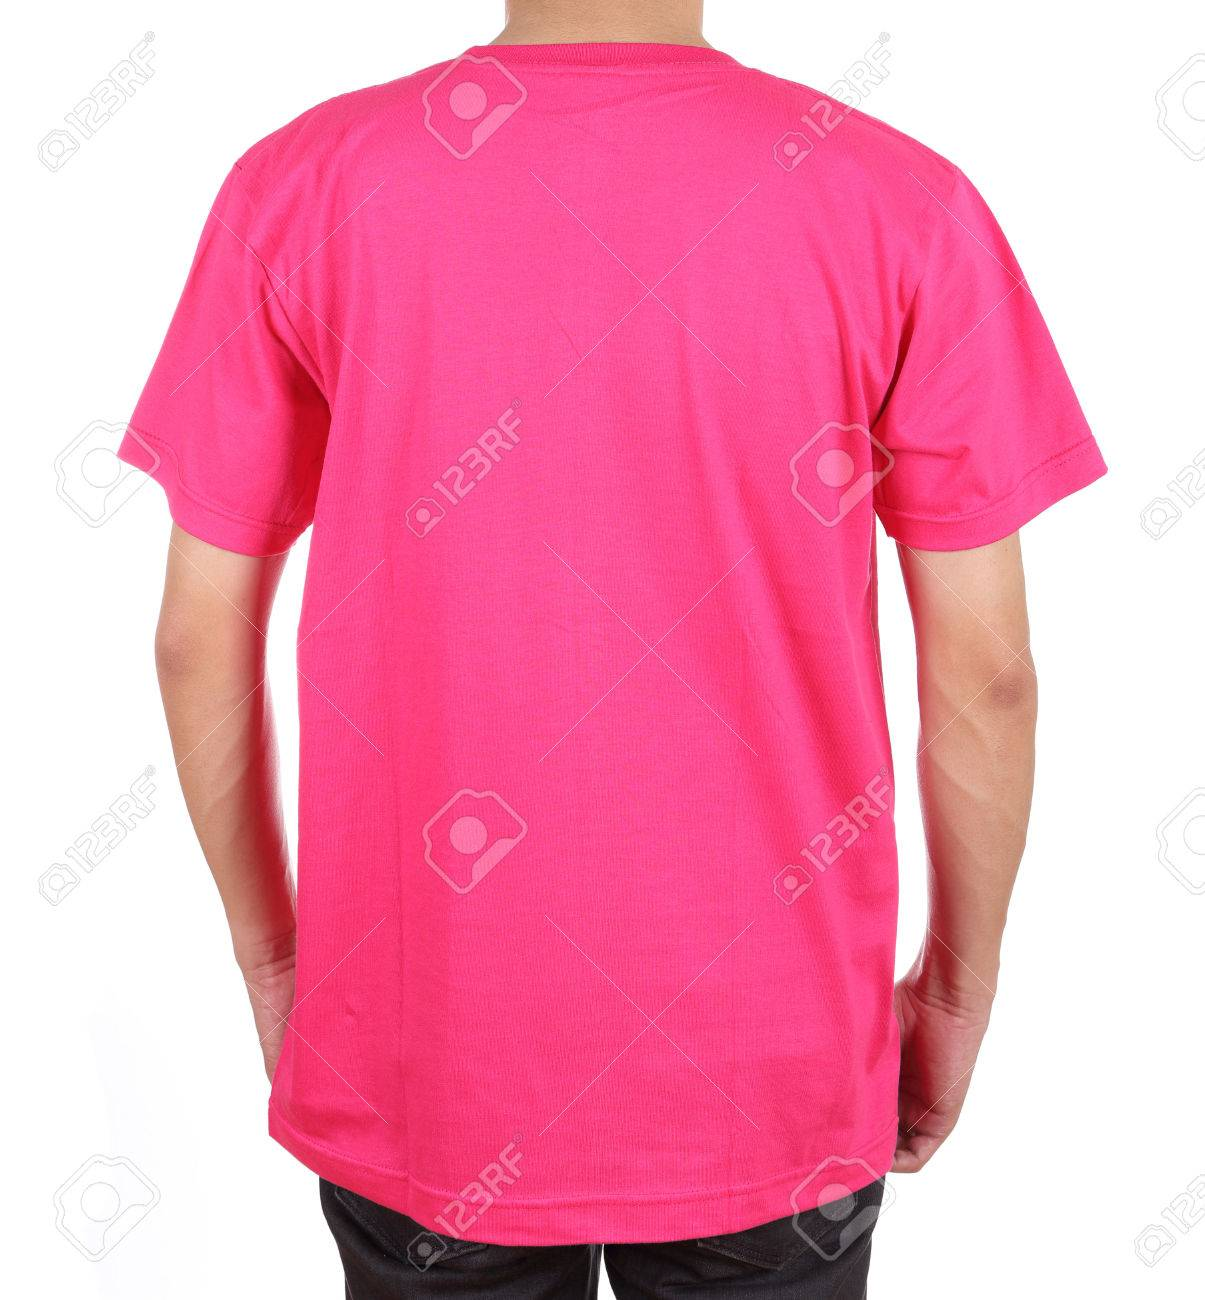 98adde4b blank pink t-shirt on man (back side) isolated on white background Stock